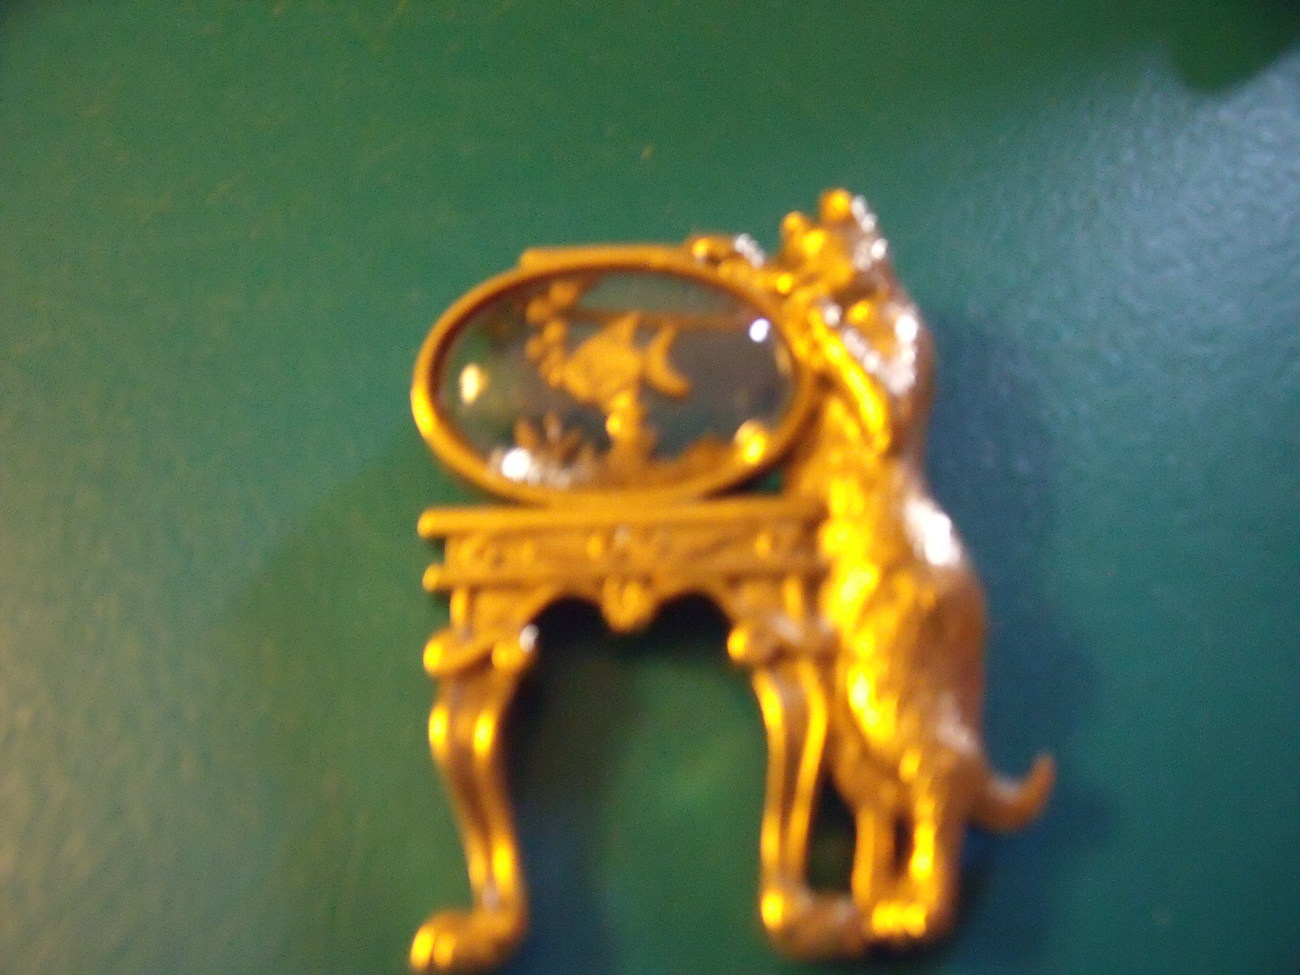 Cat Pin with Fish in Jelly Belly Bowl by 1928 - Gold Tone and Vintage - $40.00